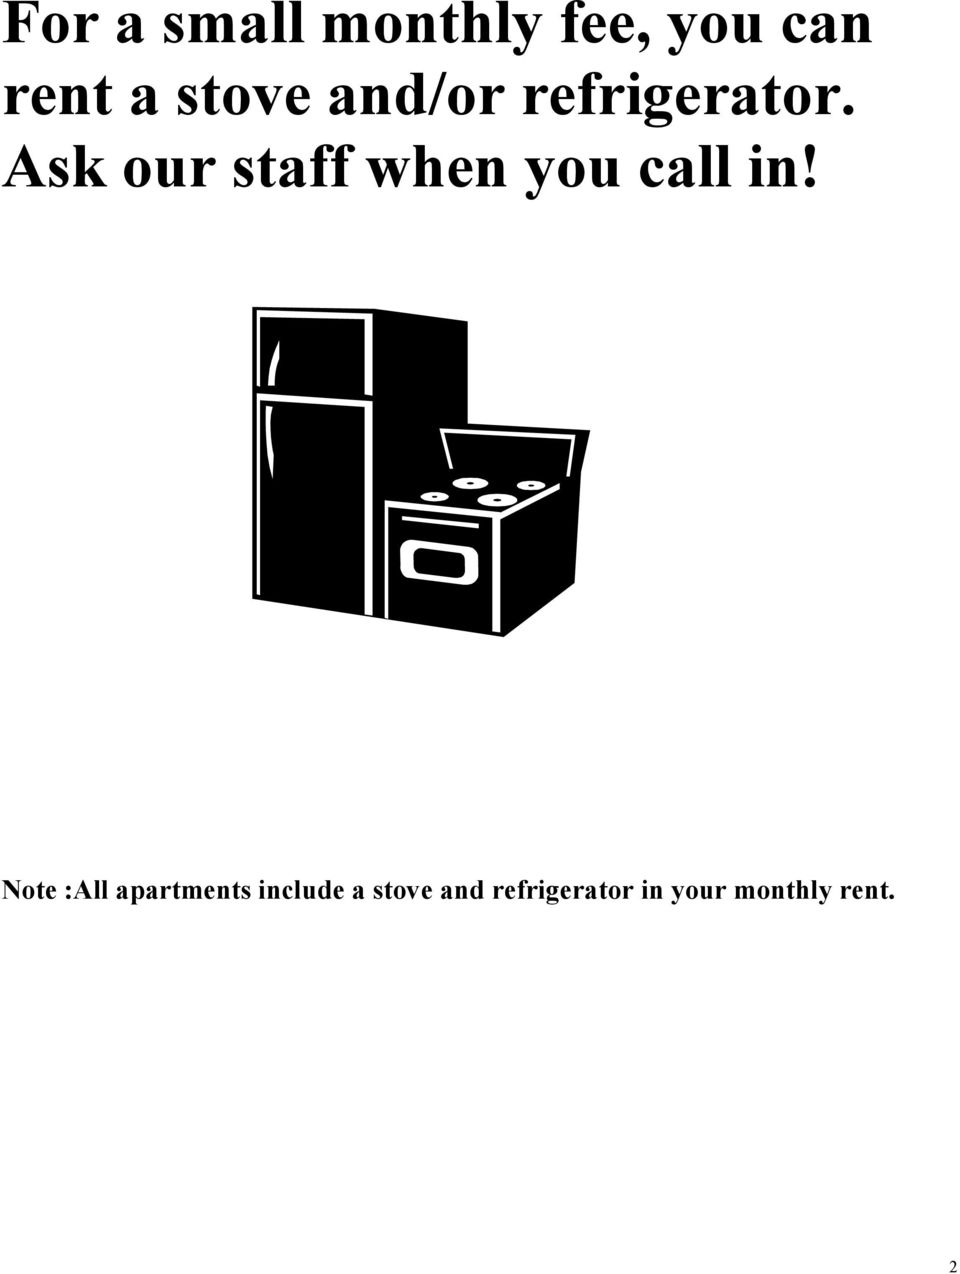 Ask our staff when you call in!